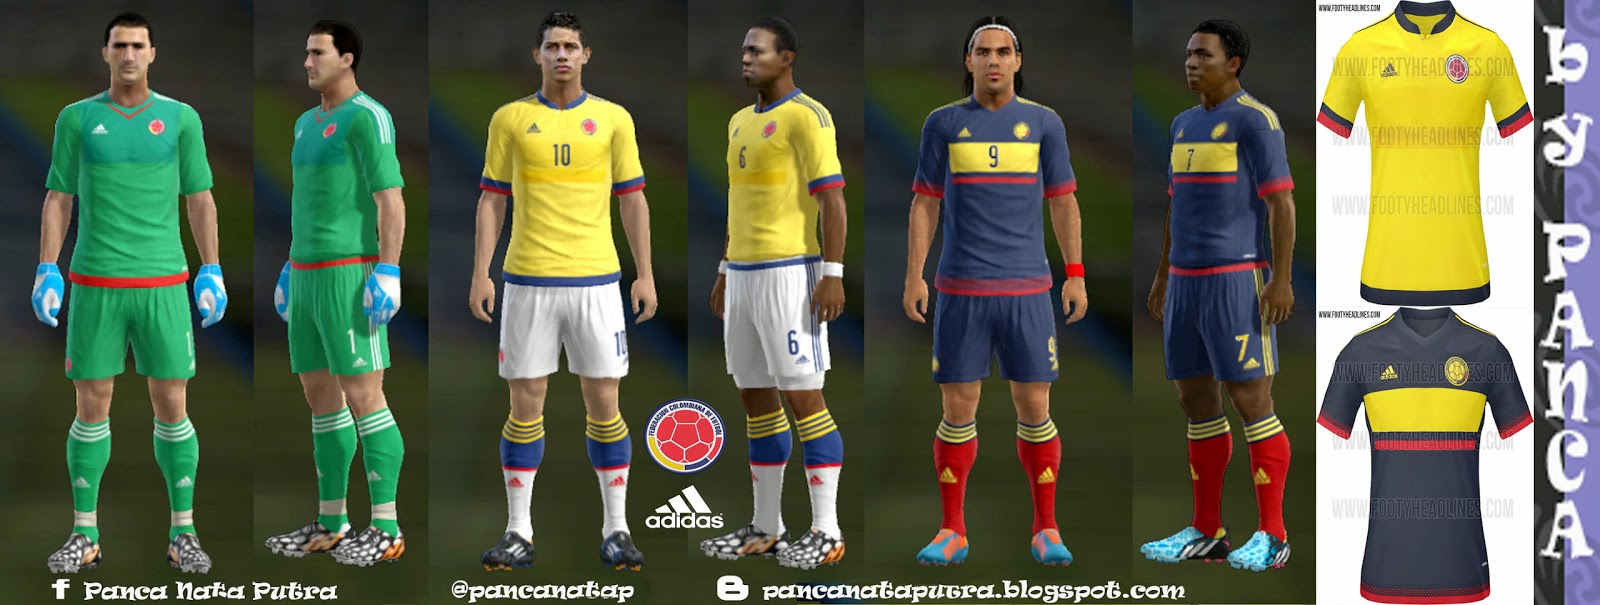 PES 2013 Colombia Kits New Copa America 2015 by panca